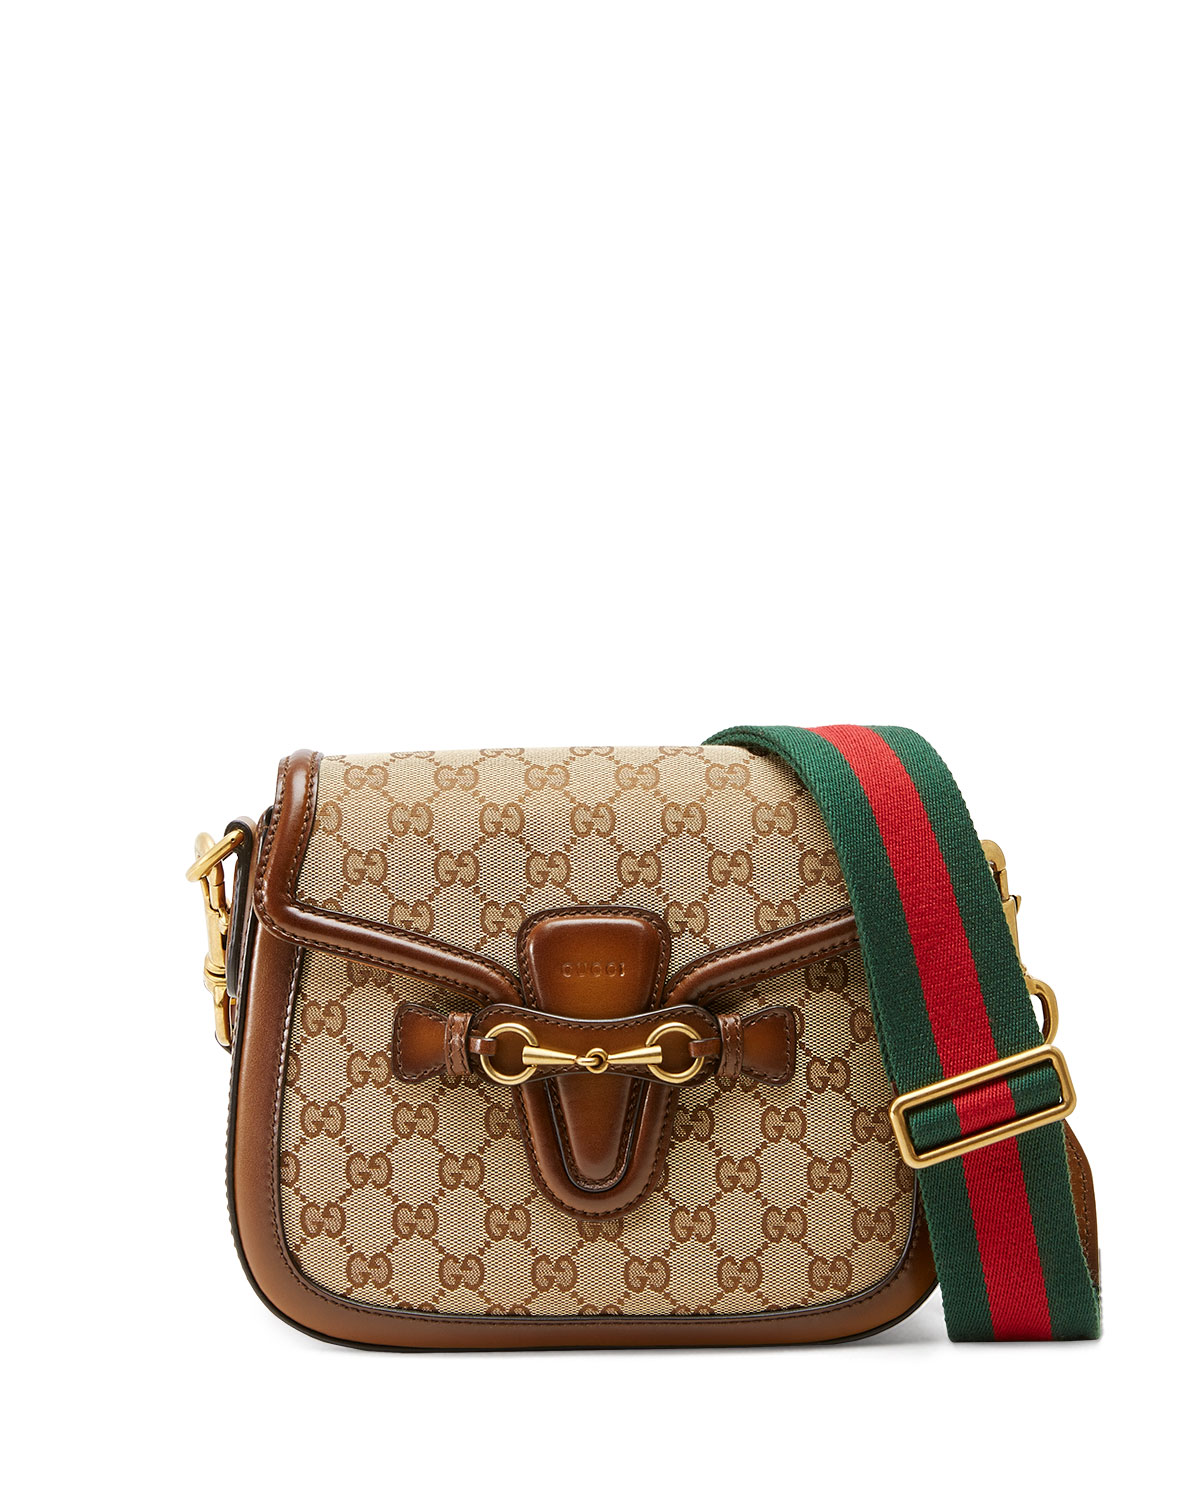 b4340fb99adb Gucci Lady Web Medium Original GG Canvas Shoulder Bag, Beige ...